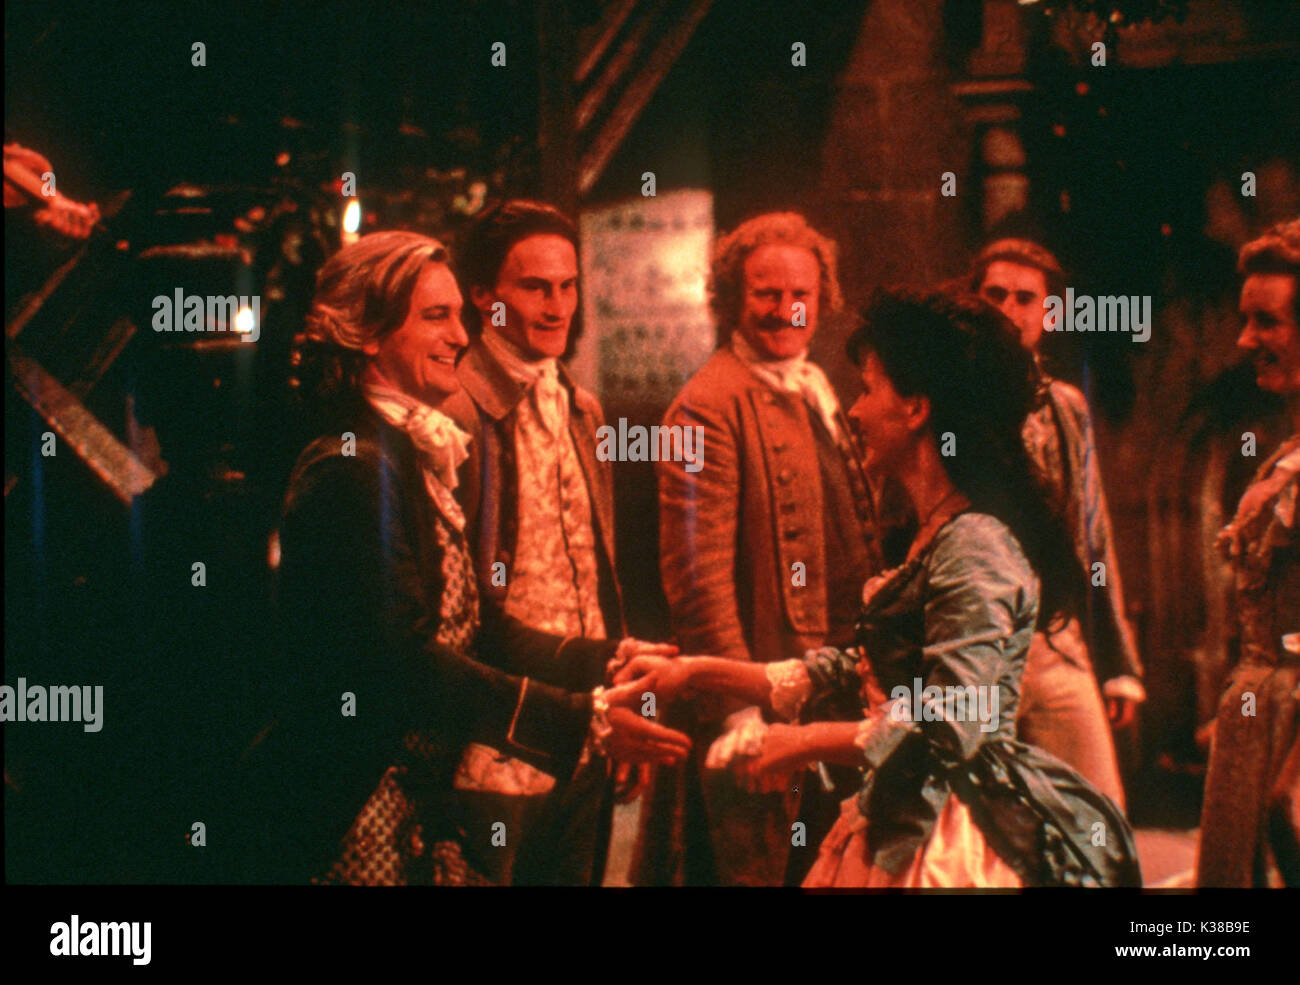 wuthering heights paramount pictures simon shepherd as edgar  wuthering heights paramount pictures simon shepherd as edgar linton left dancing juliette binoche date 1992